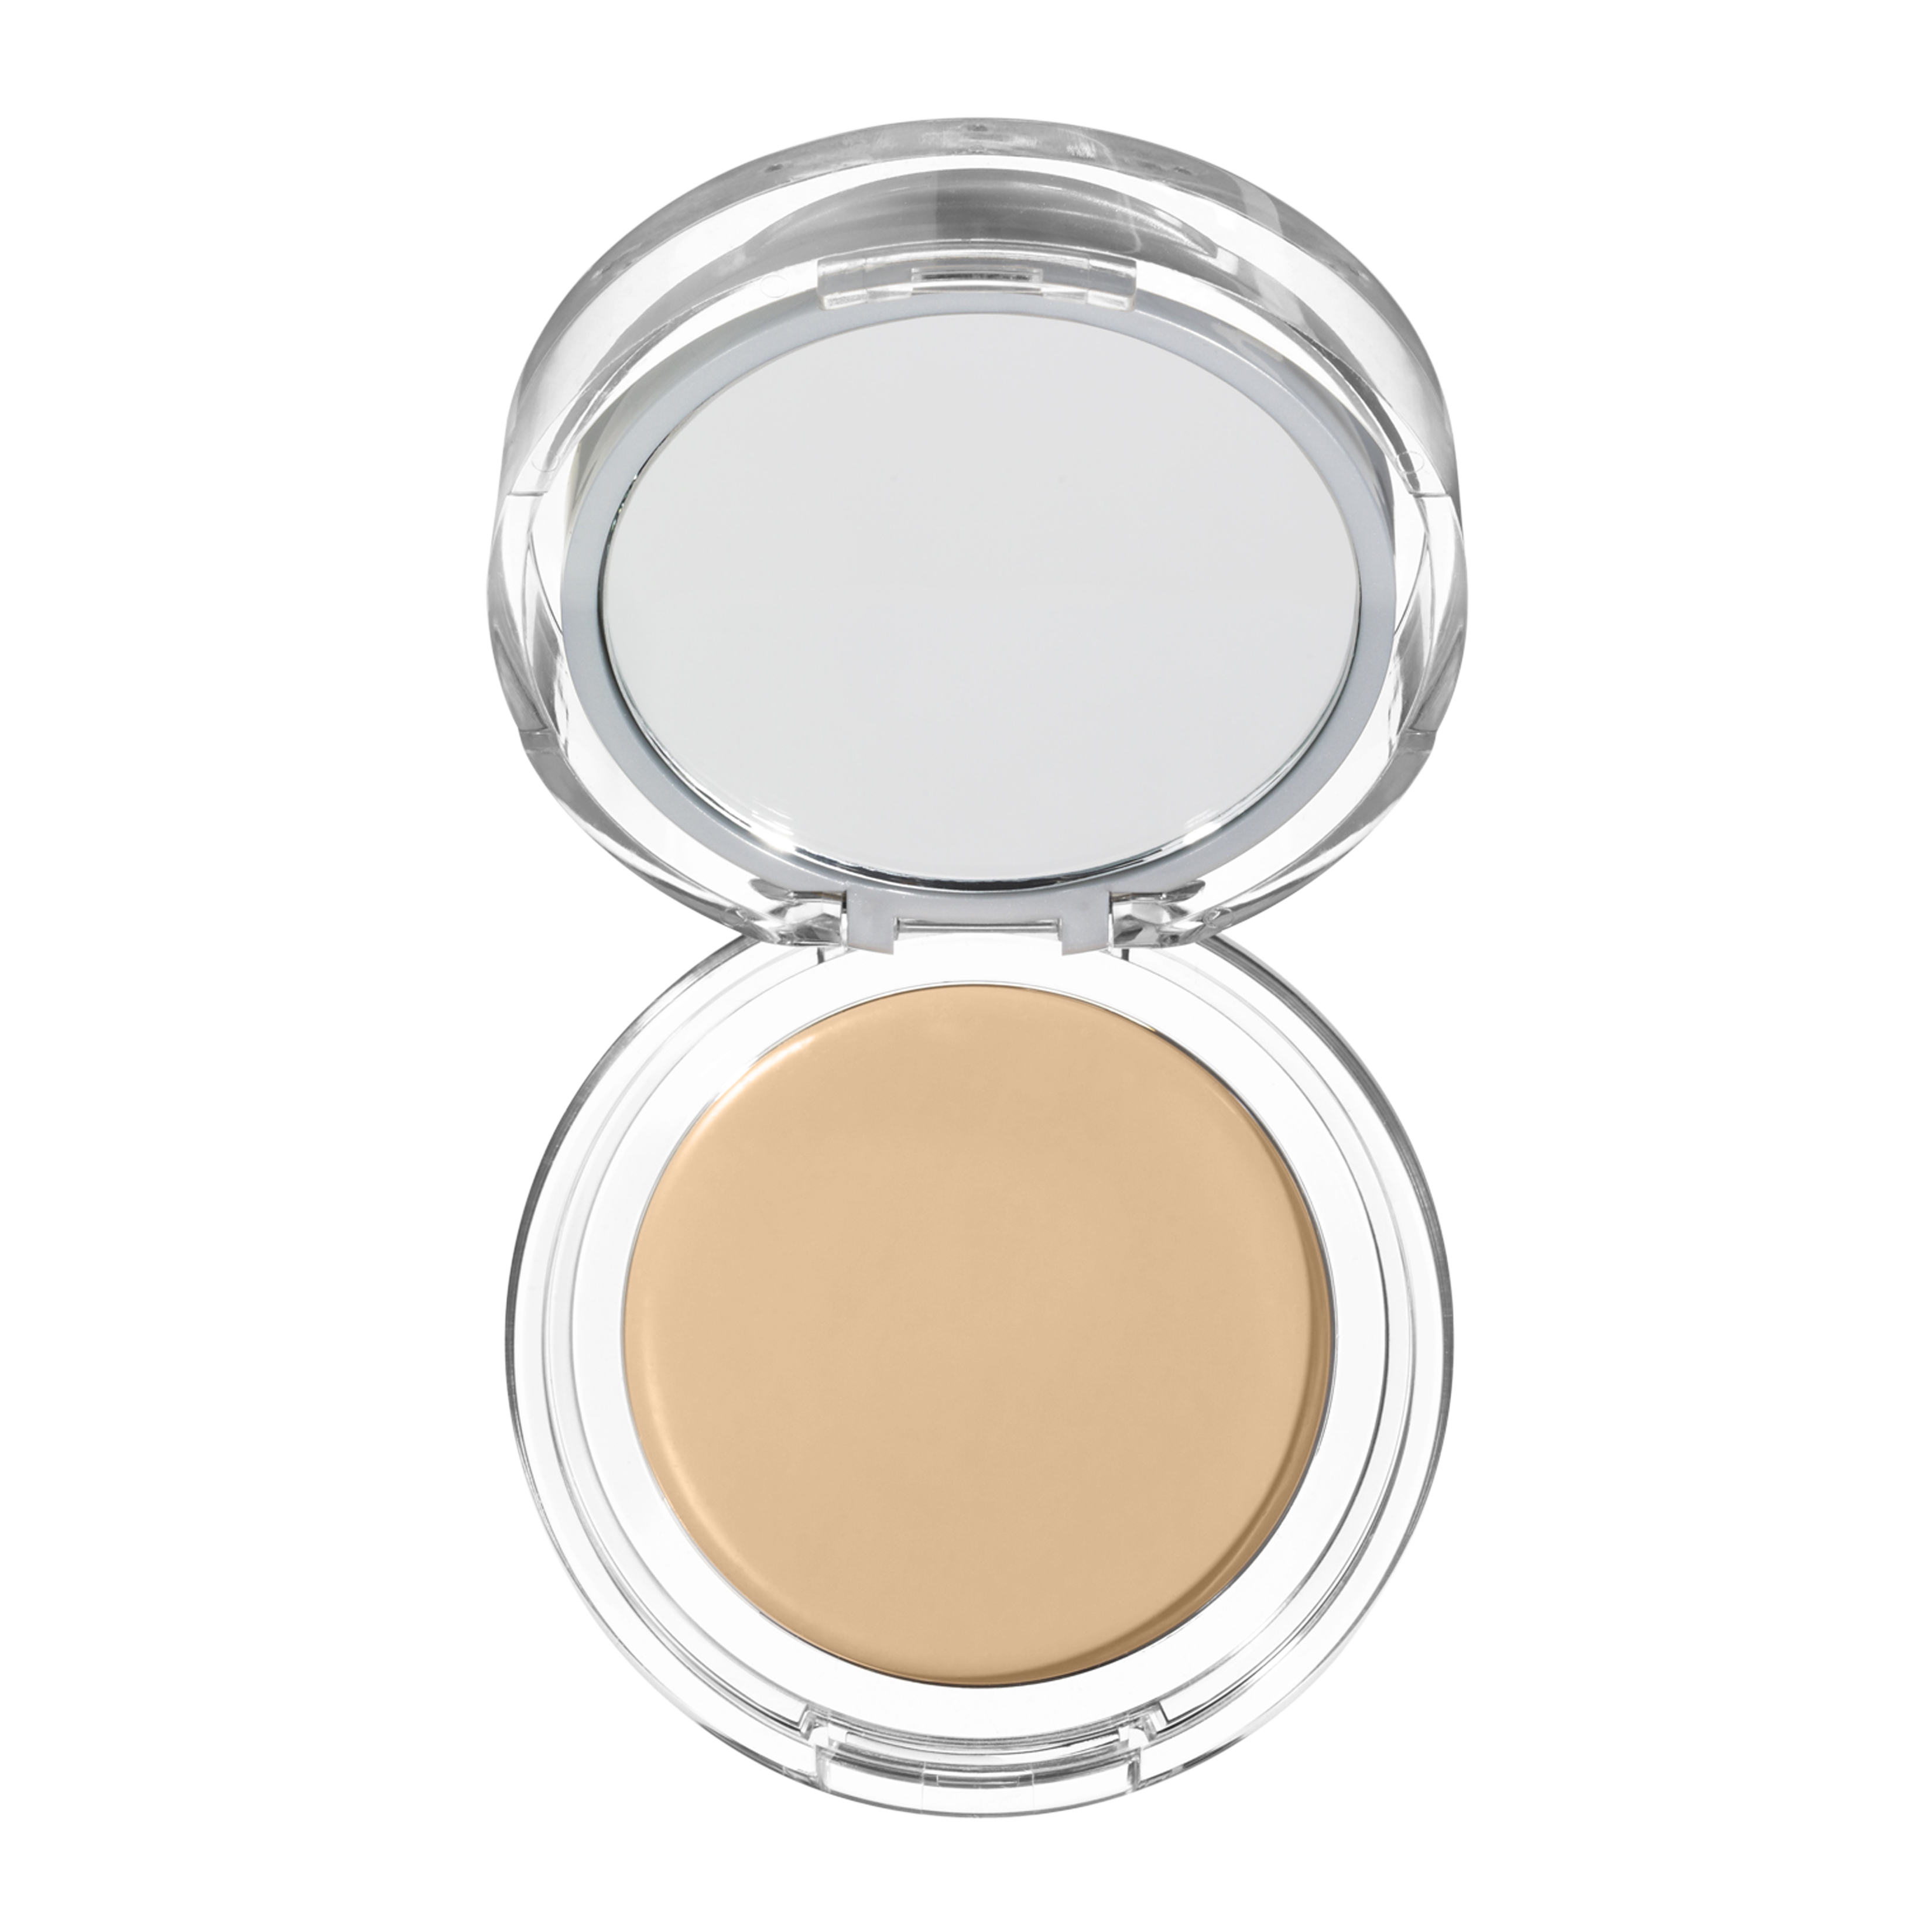 Neutrogena Healthy Skin Compact Makeup Foundation, Broad Spectrum Spf 55, Classic Ivory 10,.35 Oz.